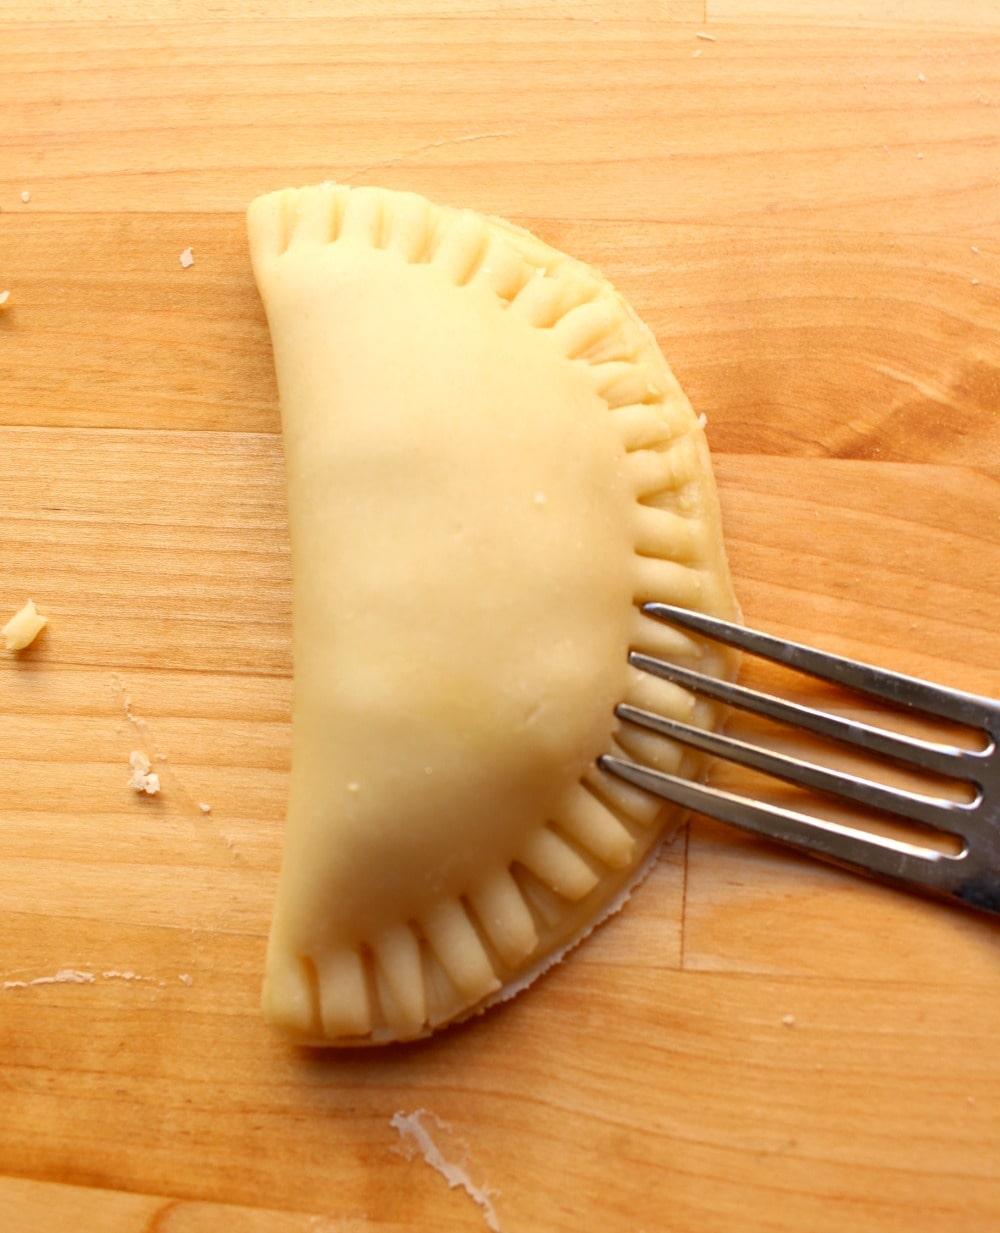 A fork sealing the edges of an empanada.